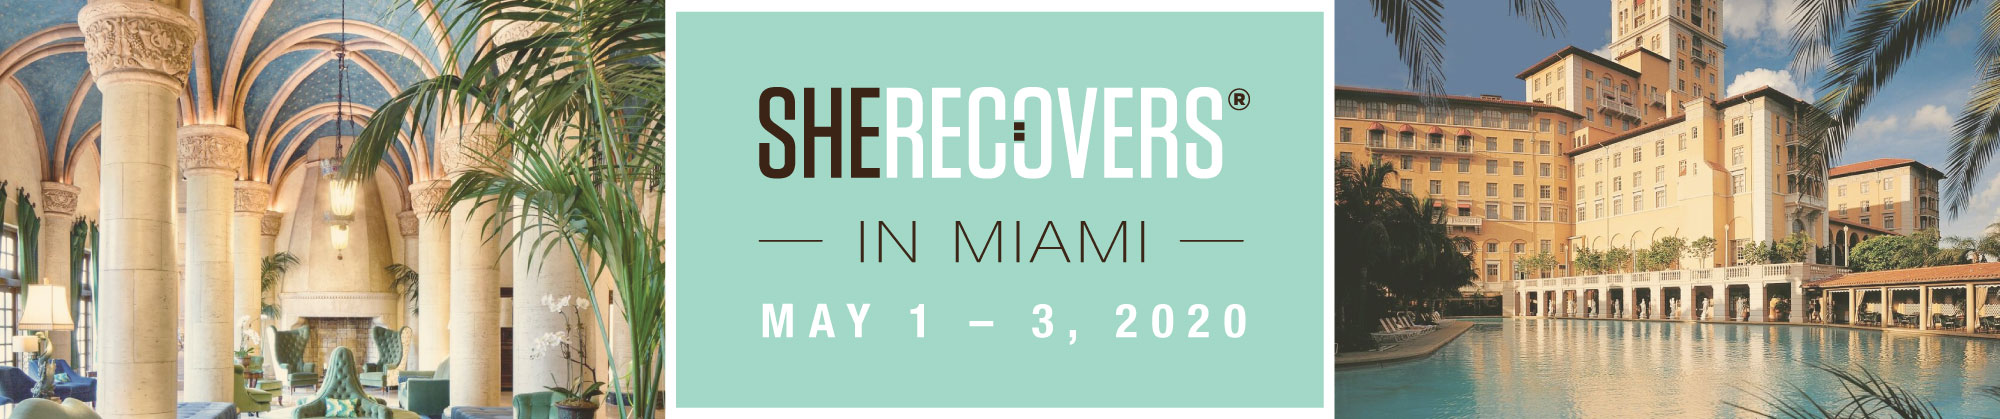 SHE RECOVERS in MIAMI